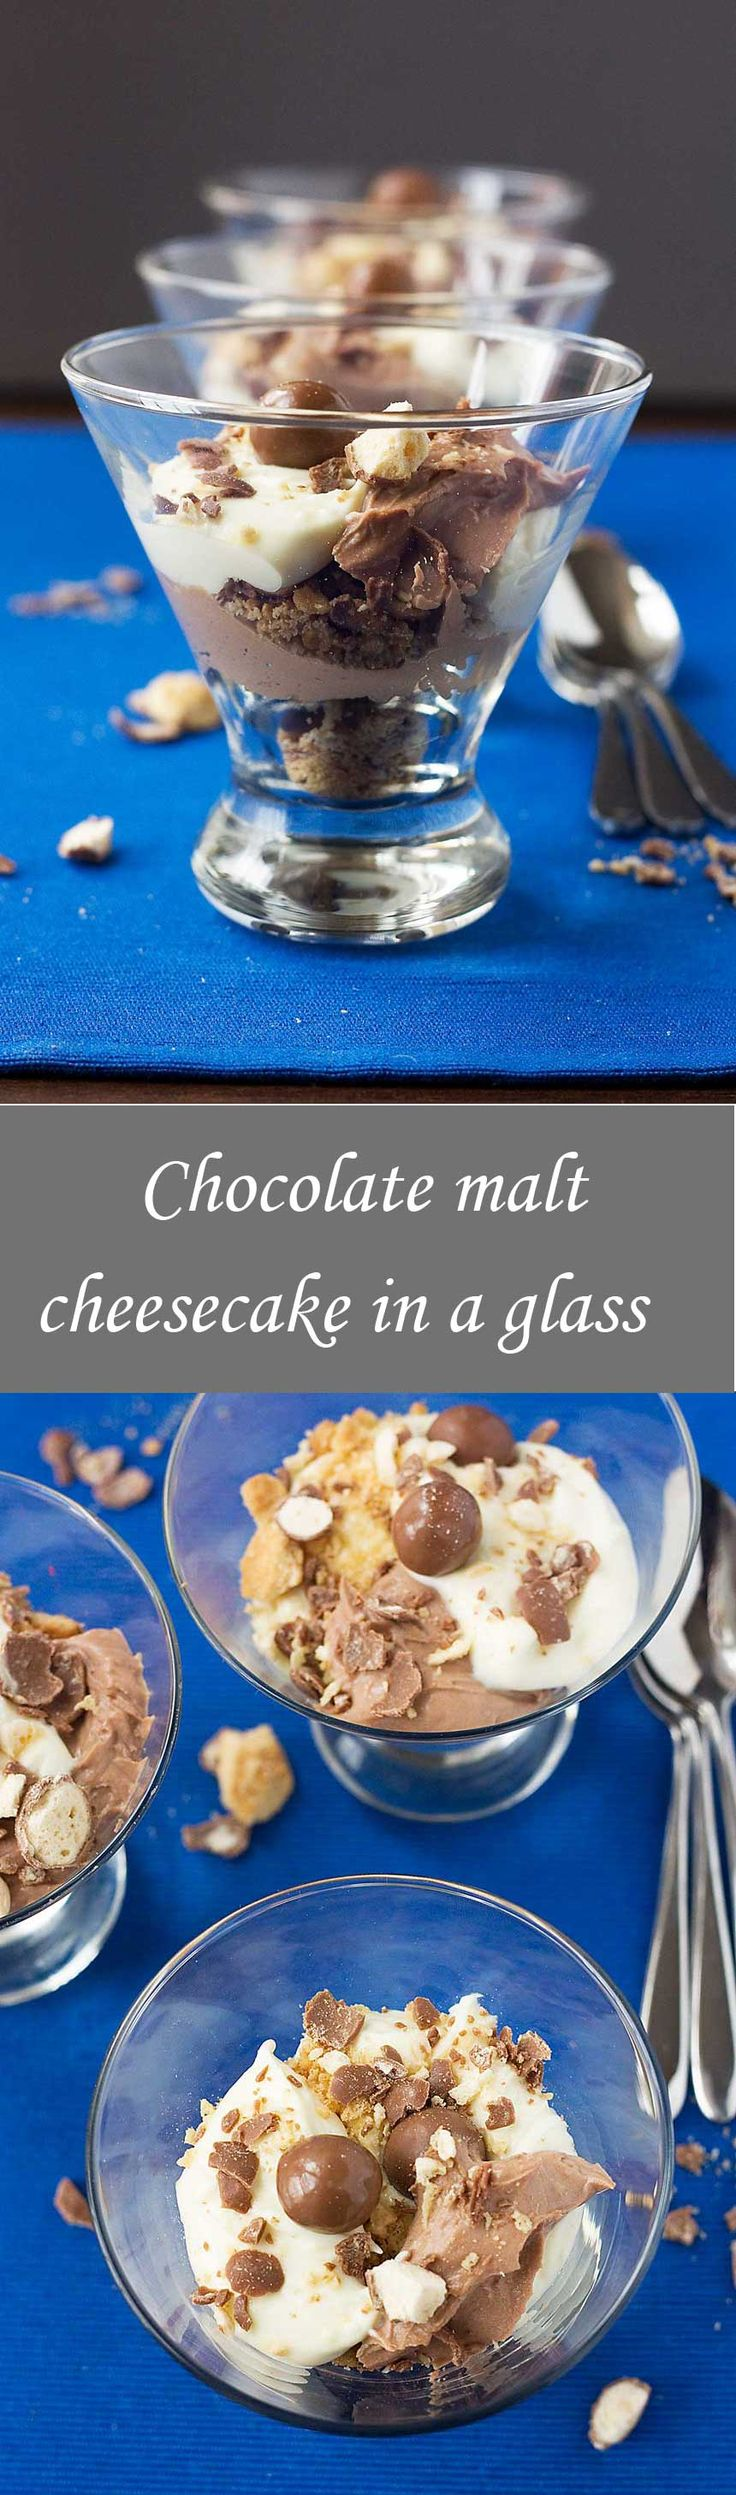 Chocolate malt cheesecake in a glass